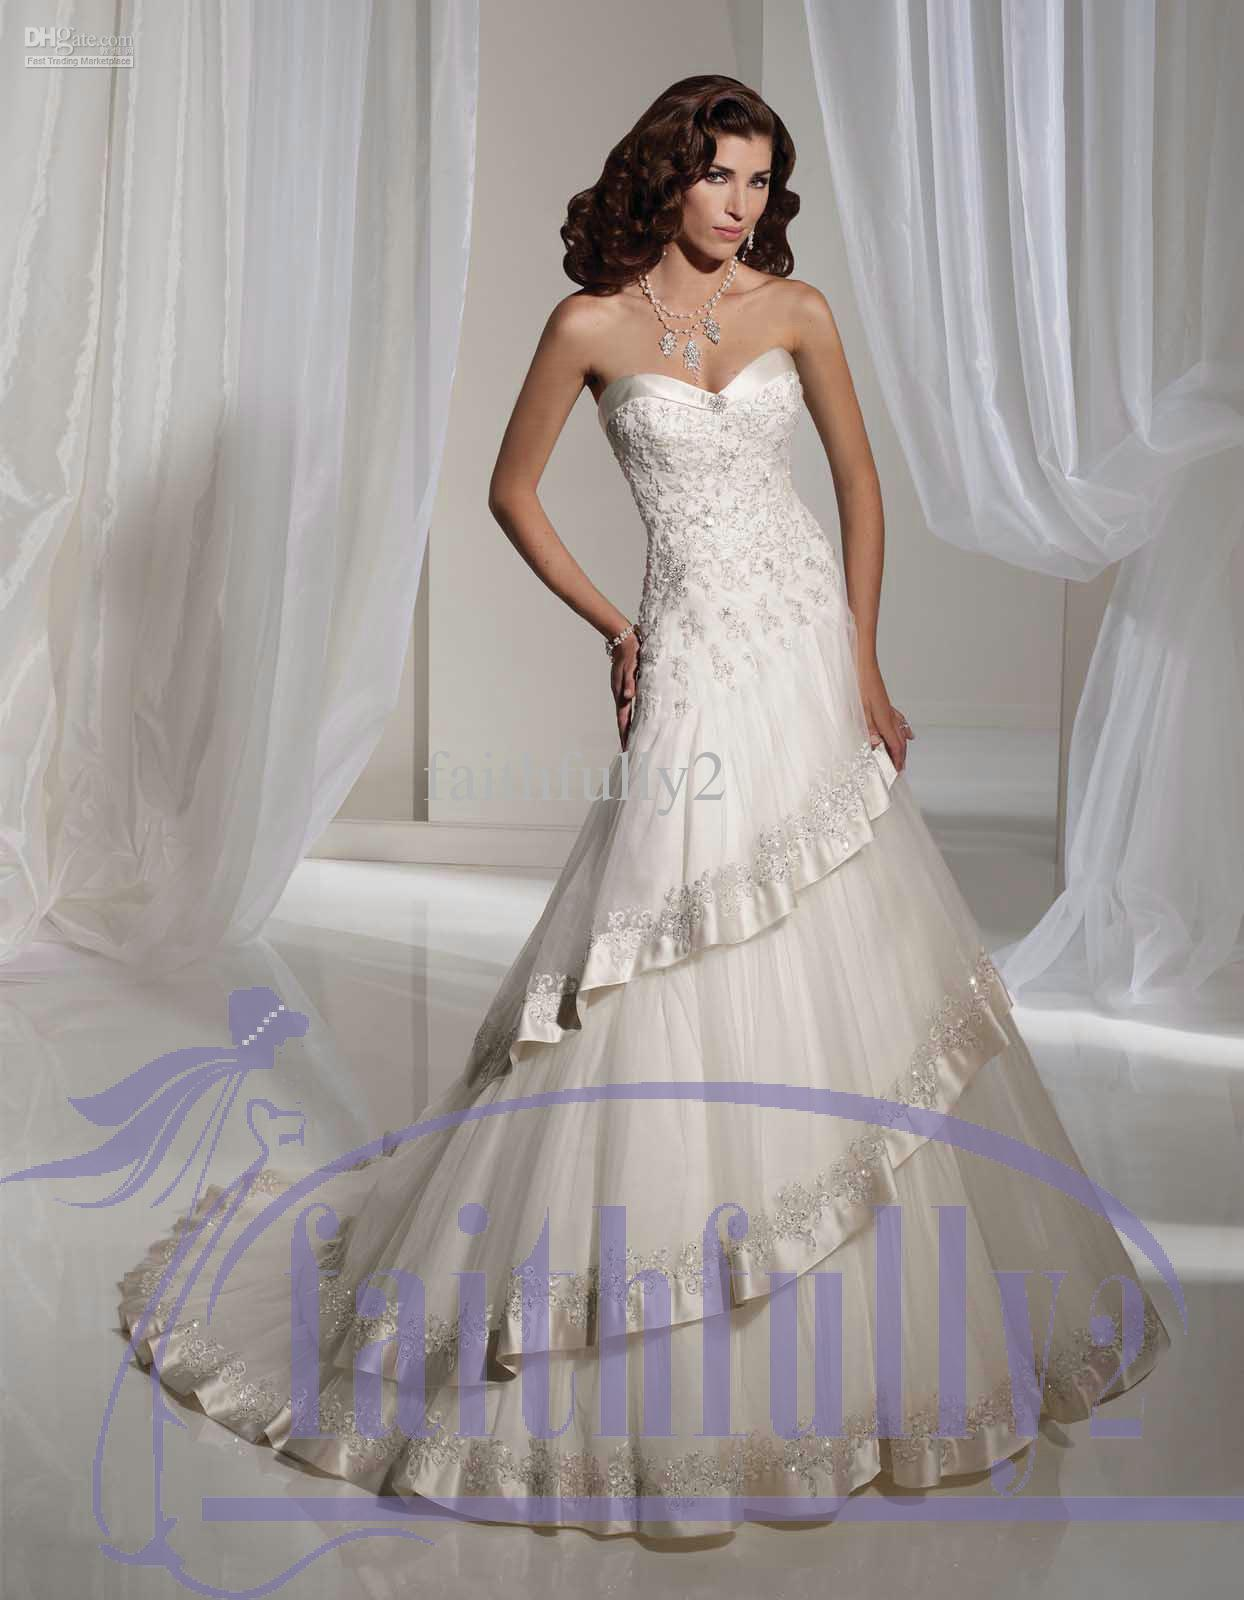 y Vintage Sweetheart A Line Wedding Dresses Lace Beaded